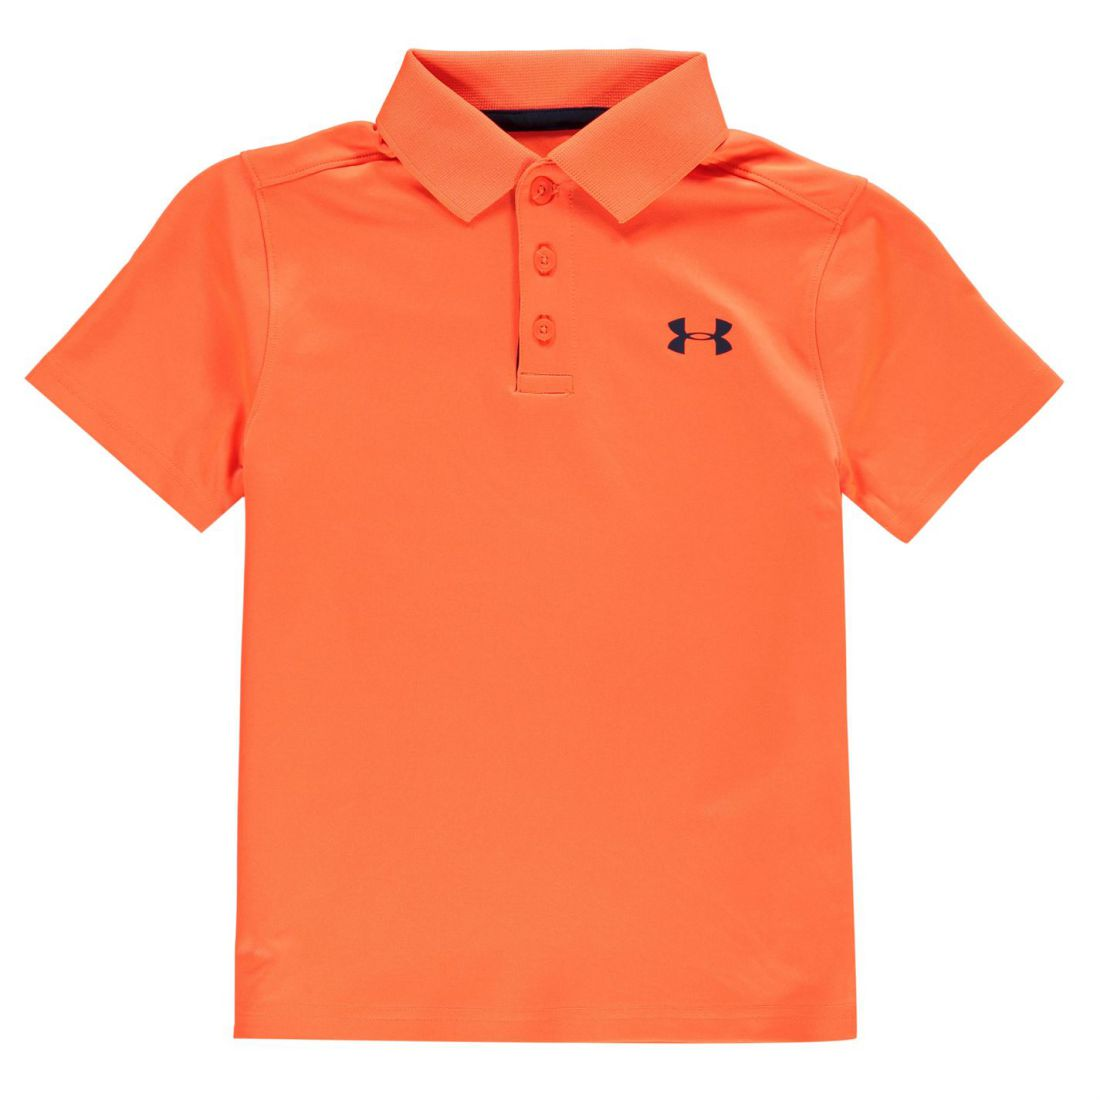 286c4c6c Image is loading Under-Armour-Kids-Boys-Performance-Polo-Shirt-Junior-